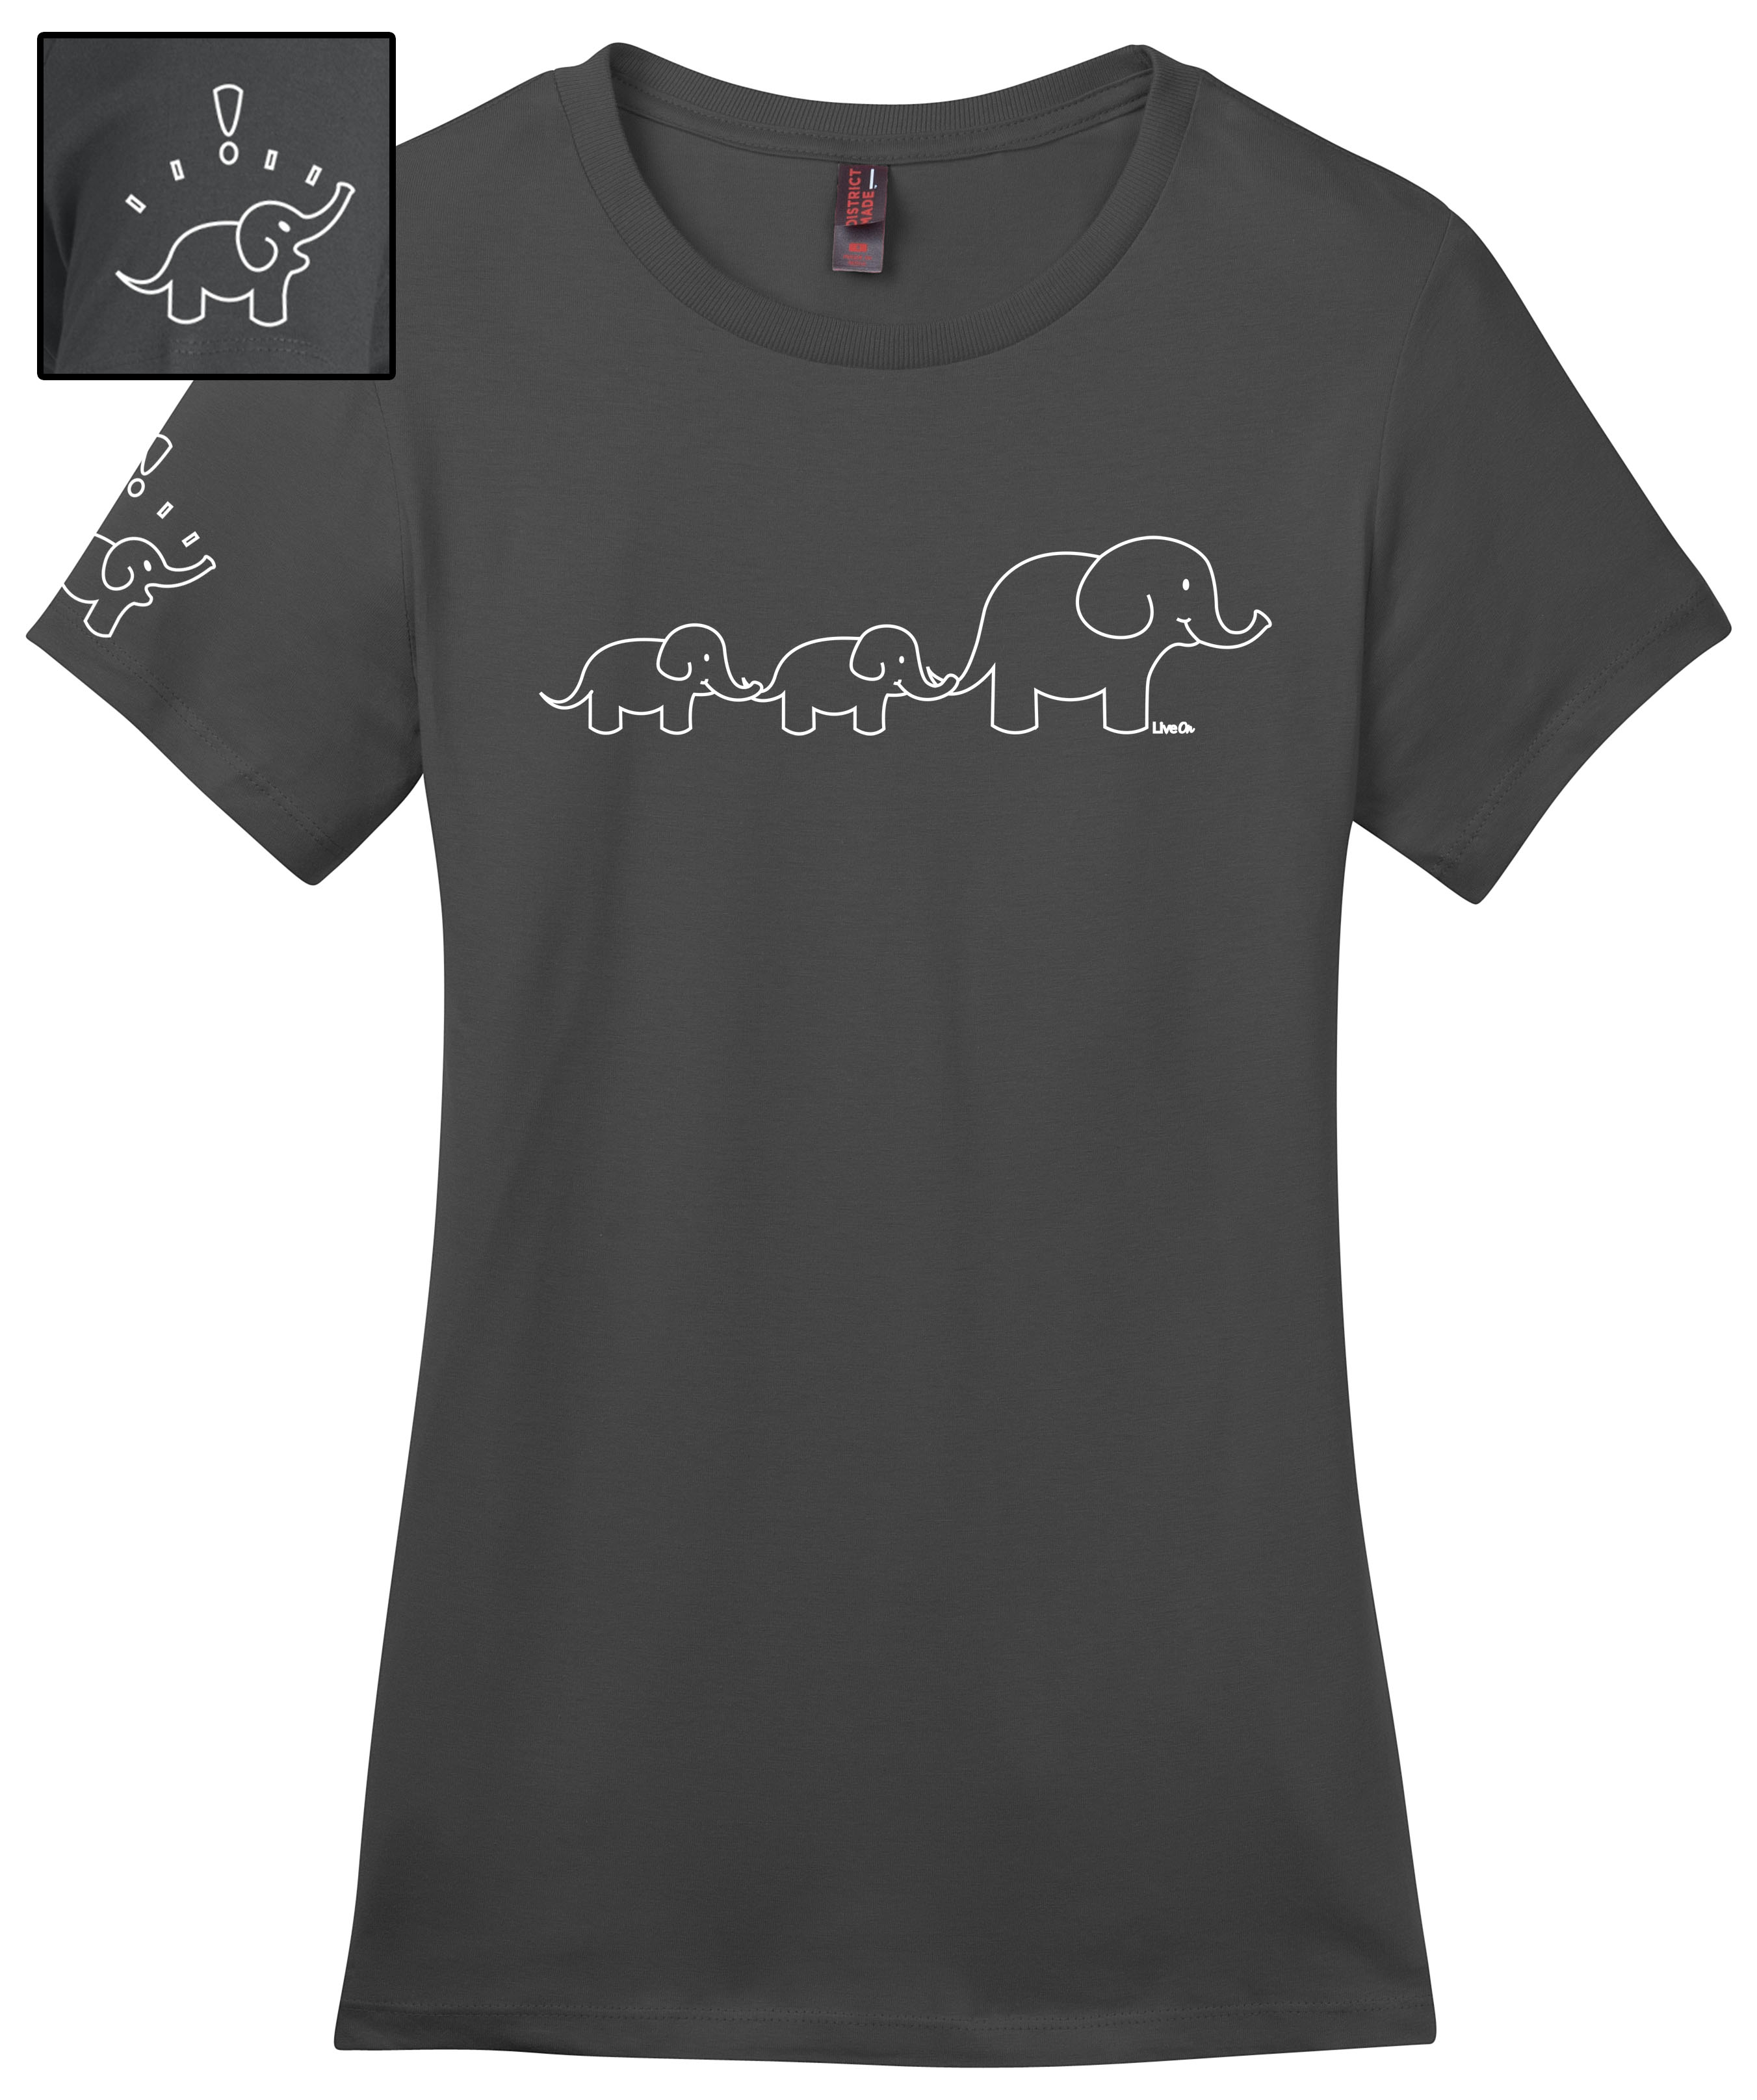 99027bc1d75558 Ladies Trailing Elephant Tee - Charcoal on Storenvy